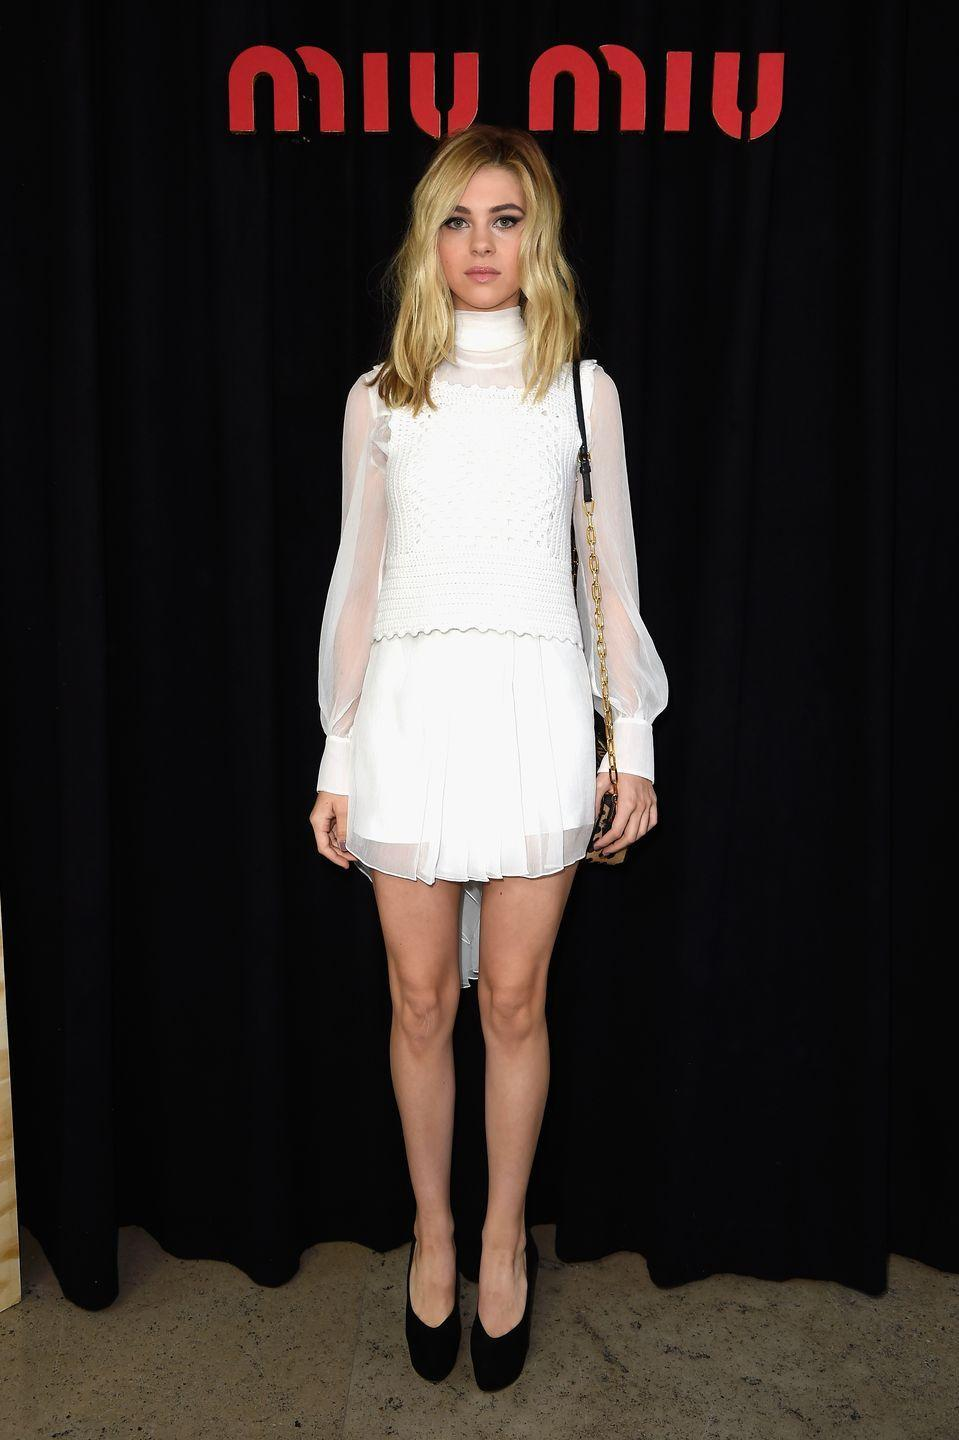 <p>The star attended Paris Fashion Week to watch the Miu Miu SS14 show in a white, high-neck midi dress with sheer sleeves, teamed with a pair of black heels. </p>